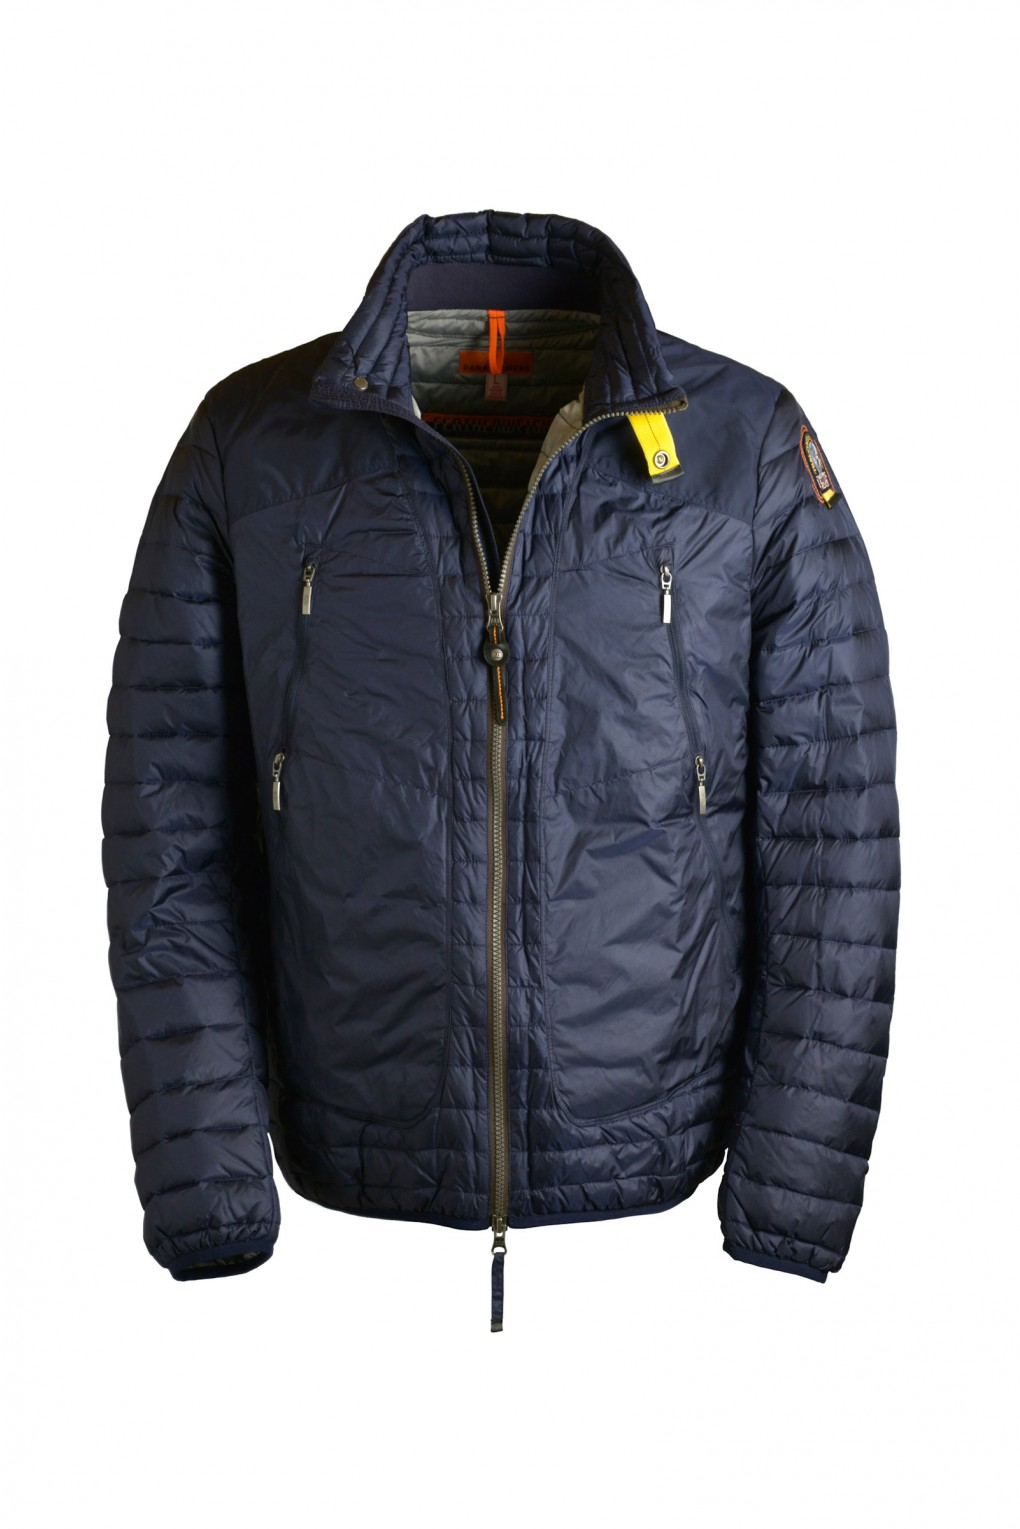 parajumpers GIULY man outerwear Marine